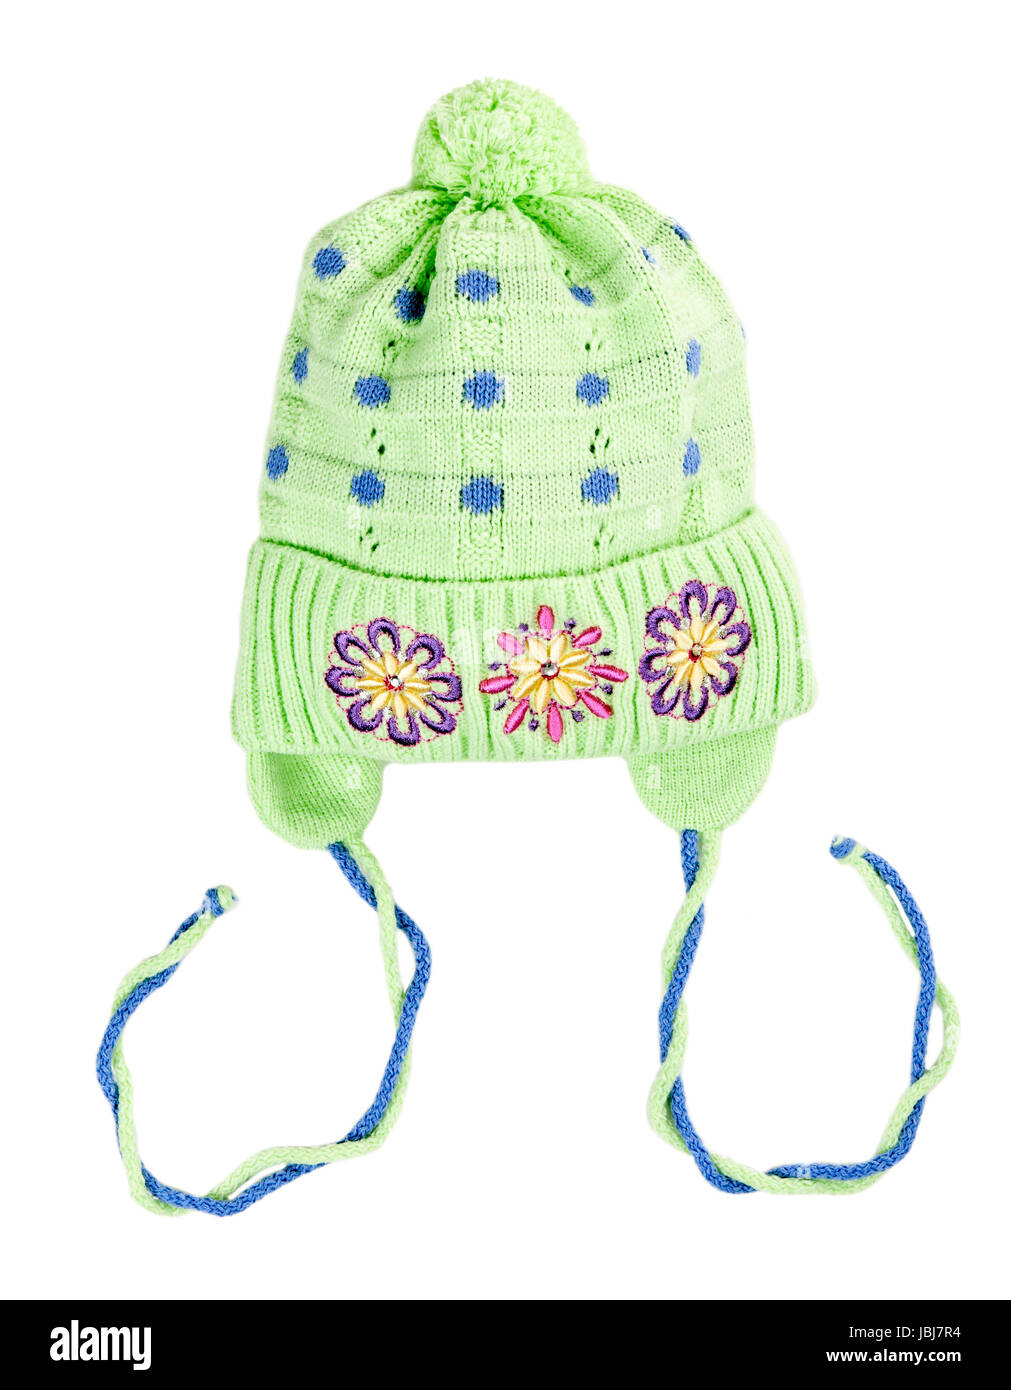 green baby knitted hat with a flower pattern on a white background ...